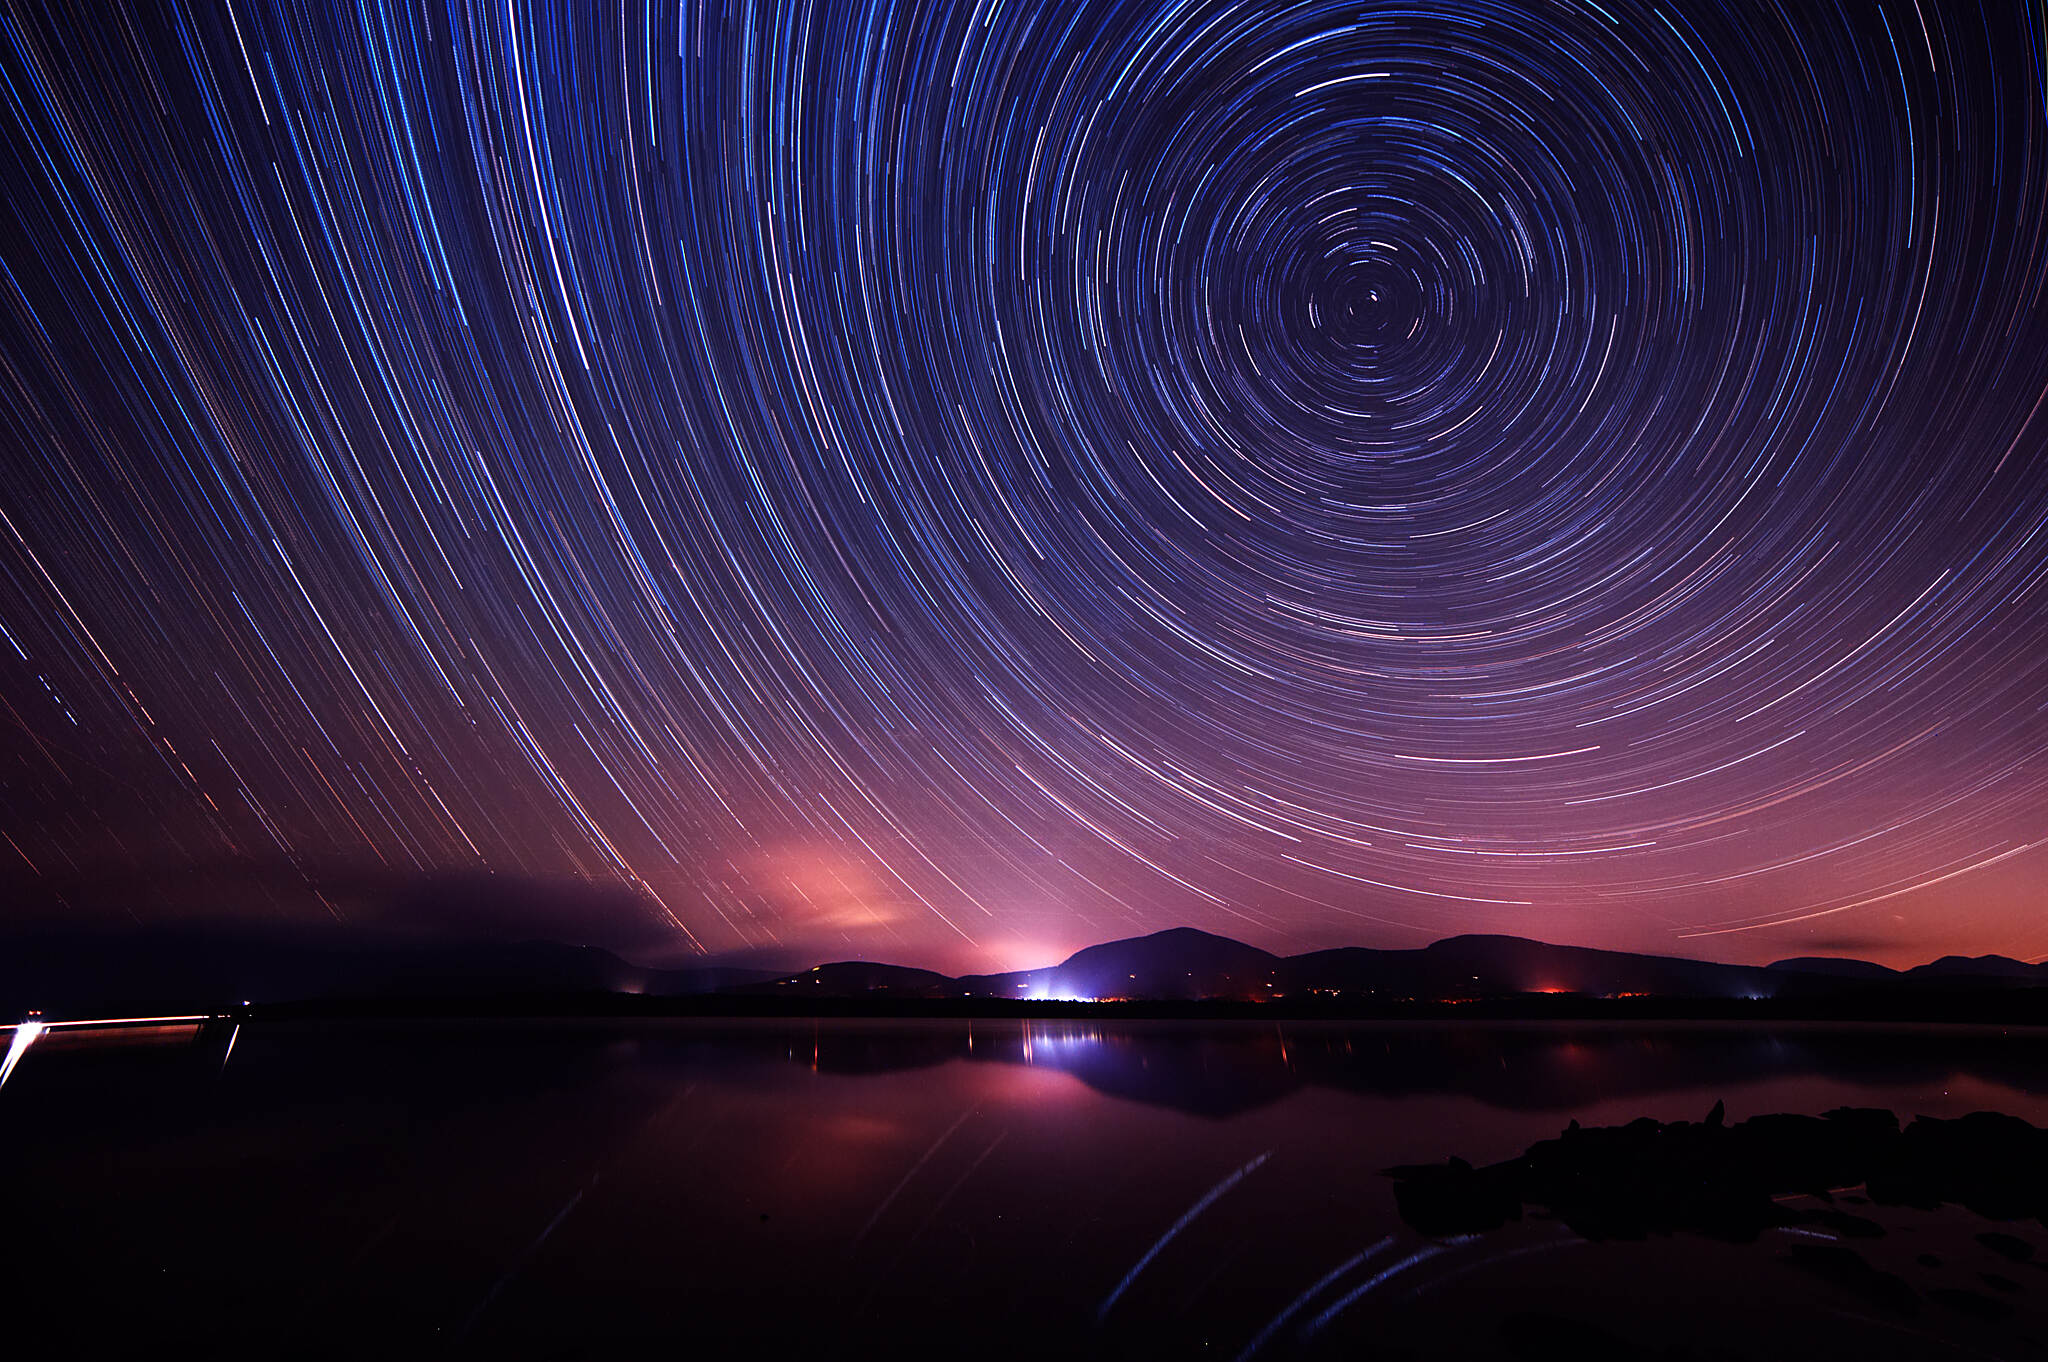 Ashokan Reservoir Promenade Star Trails over Ashokan Reservoir 40 seconds exposures, 140 images stacked